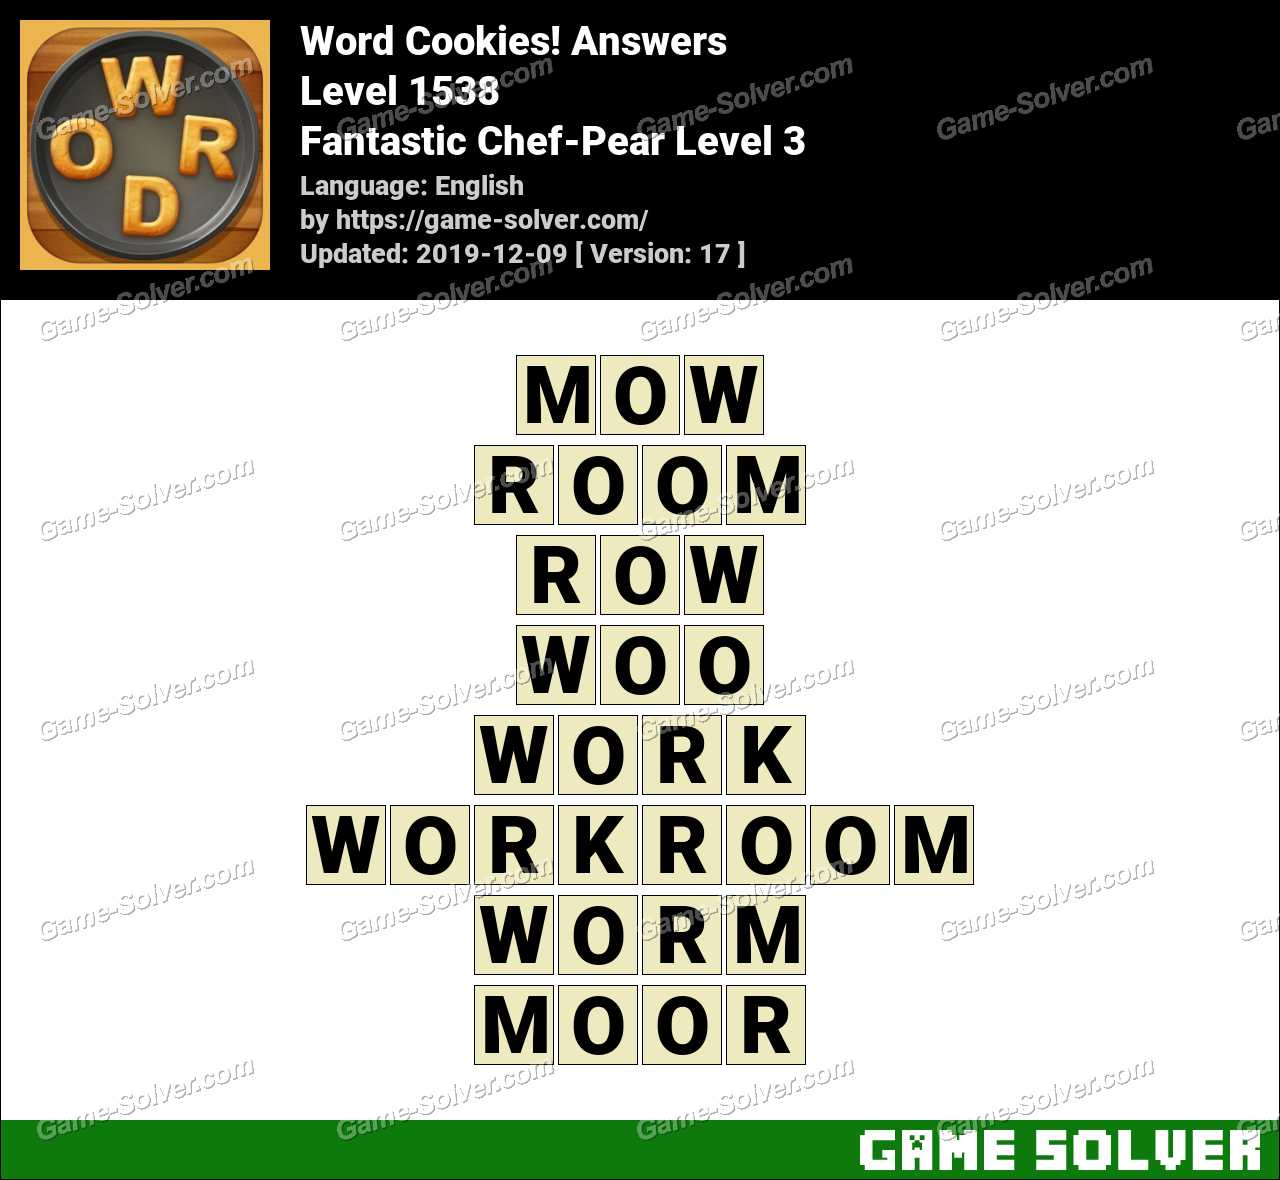 Word Cookies Fantastic Chef-Pear Level 3 Answers